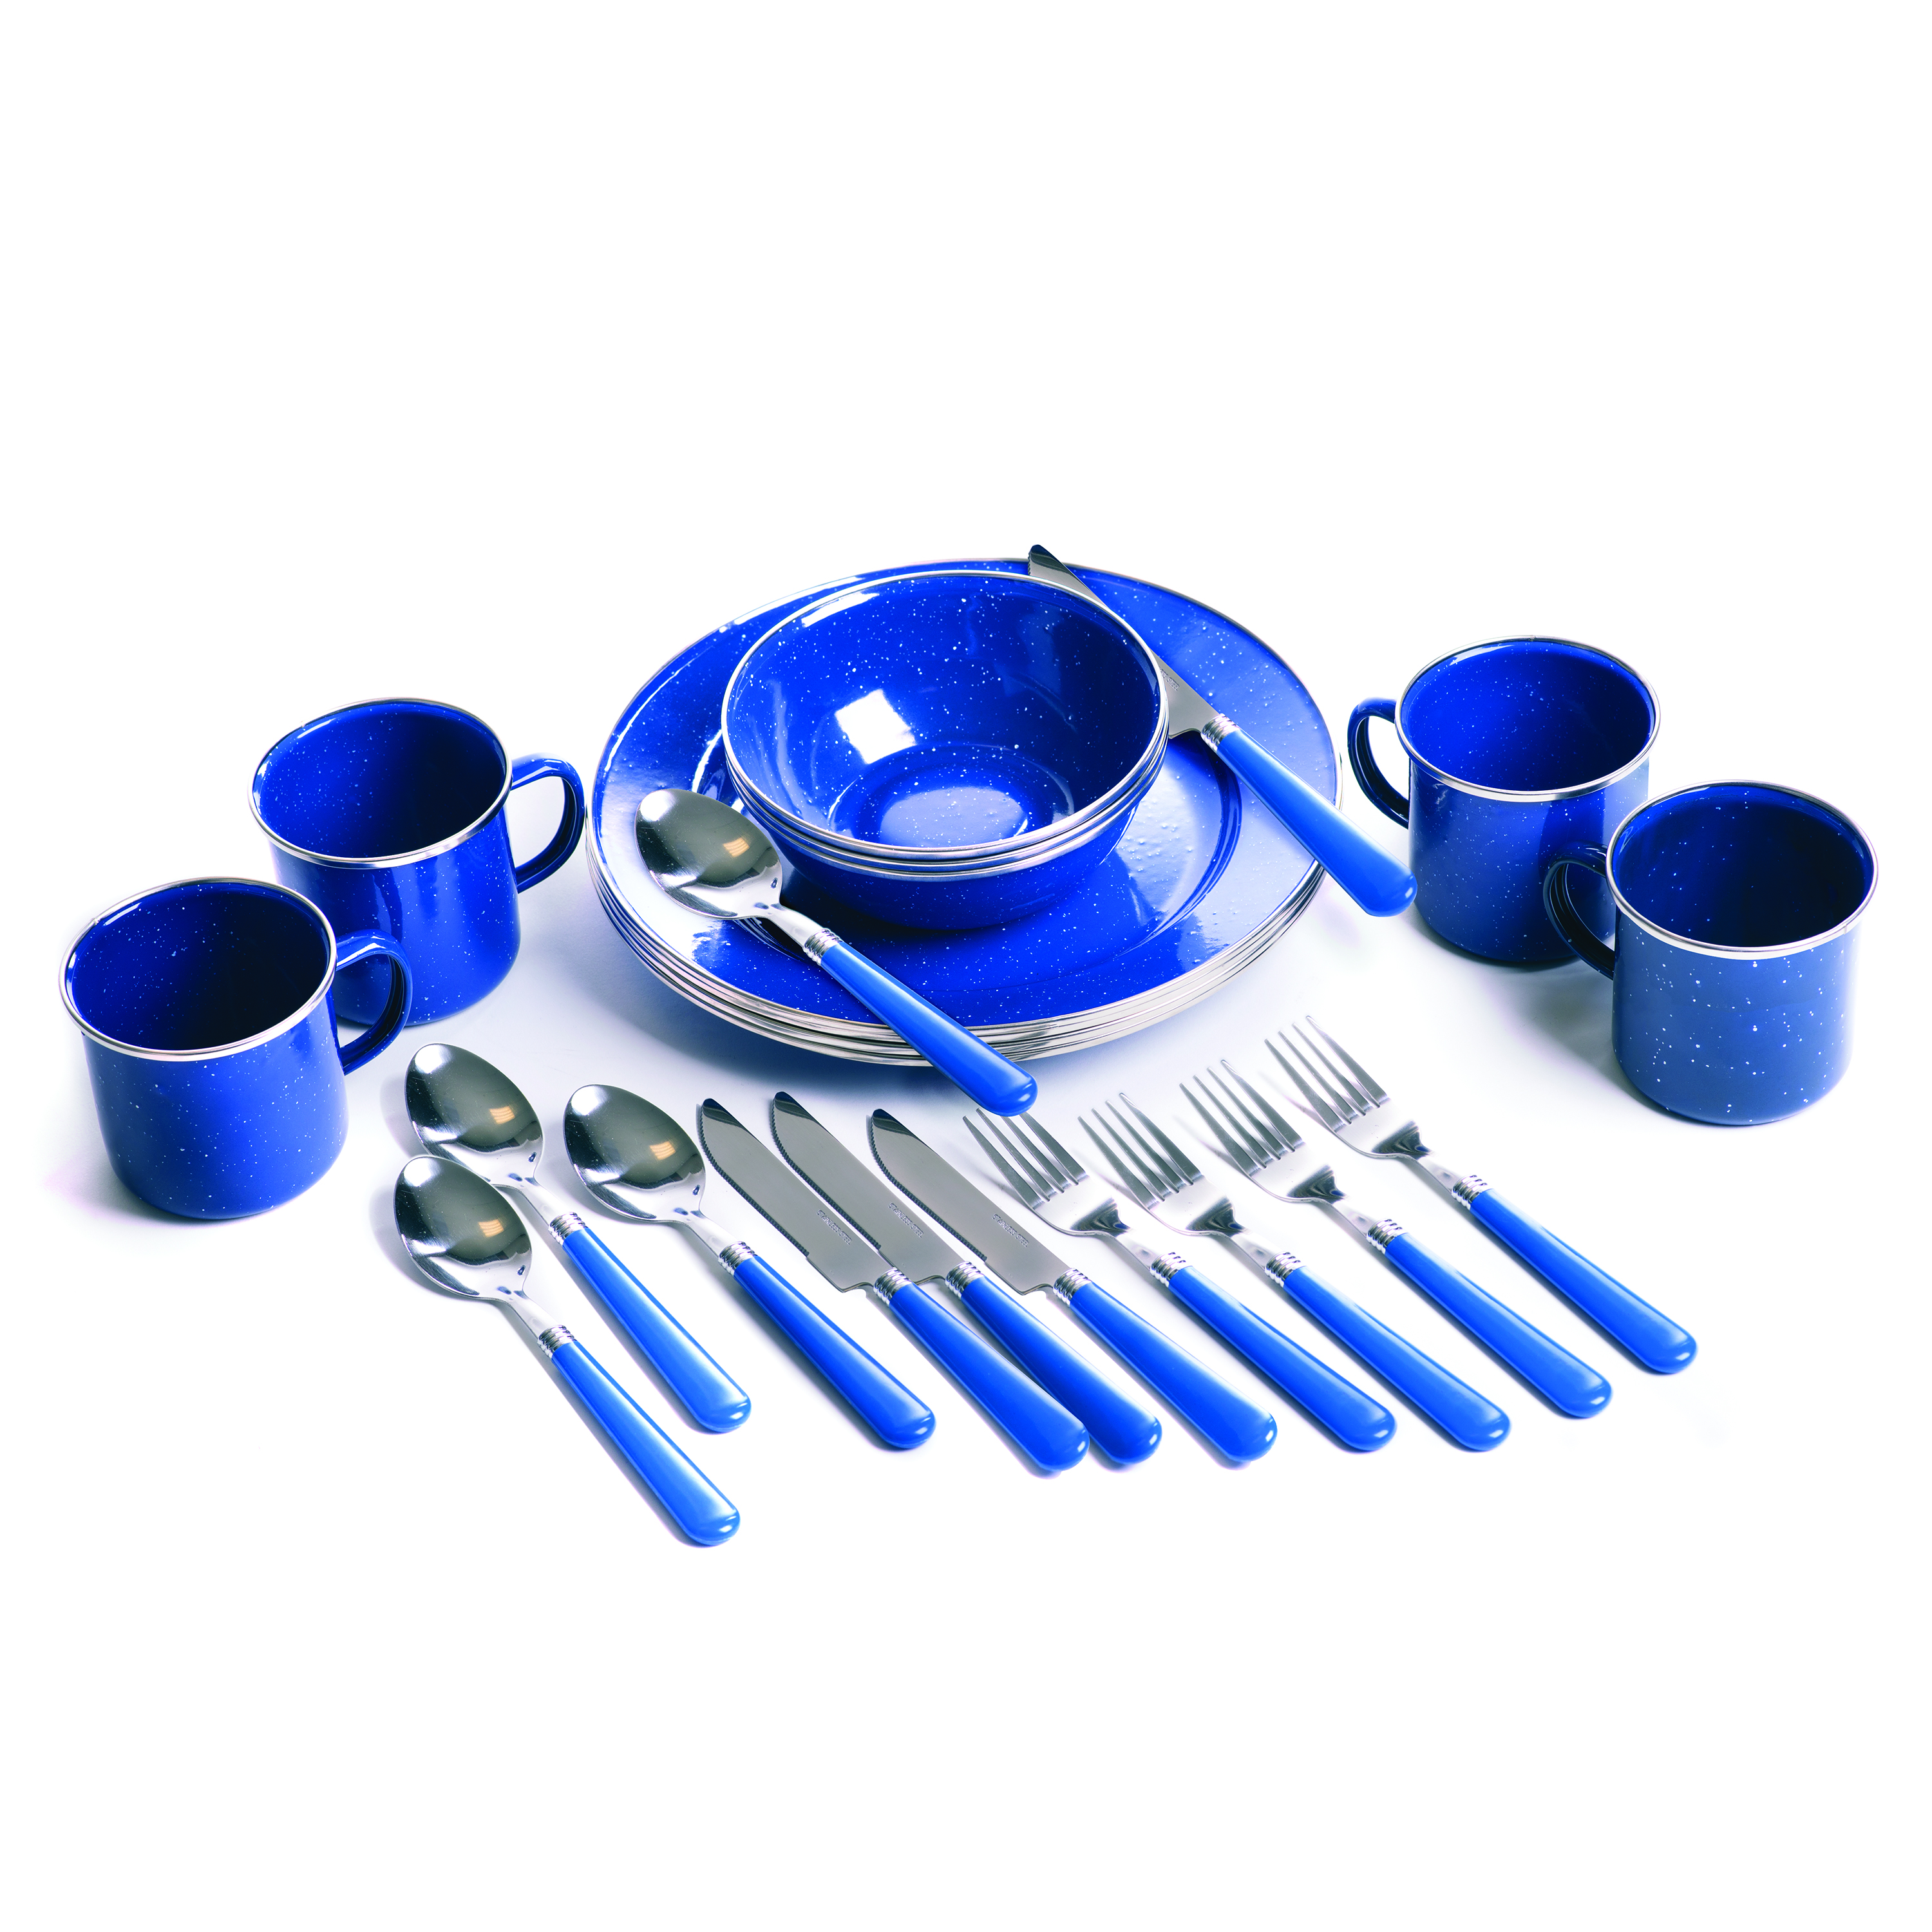 Stansport 11220 Enamel Camping 24-Piece Tableware Set